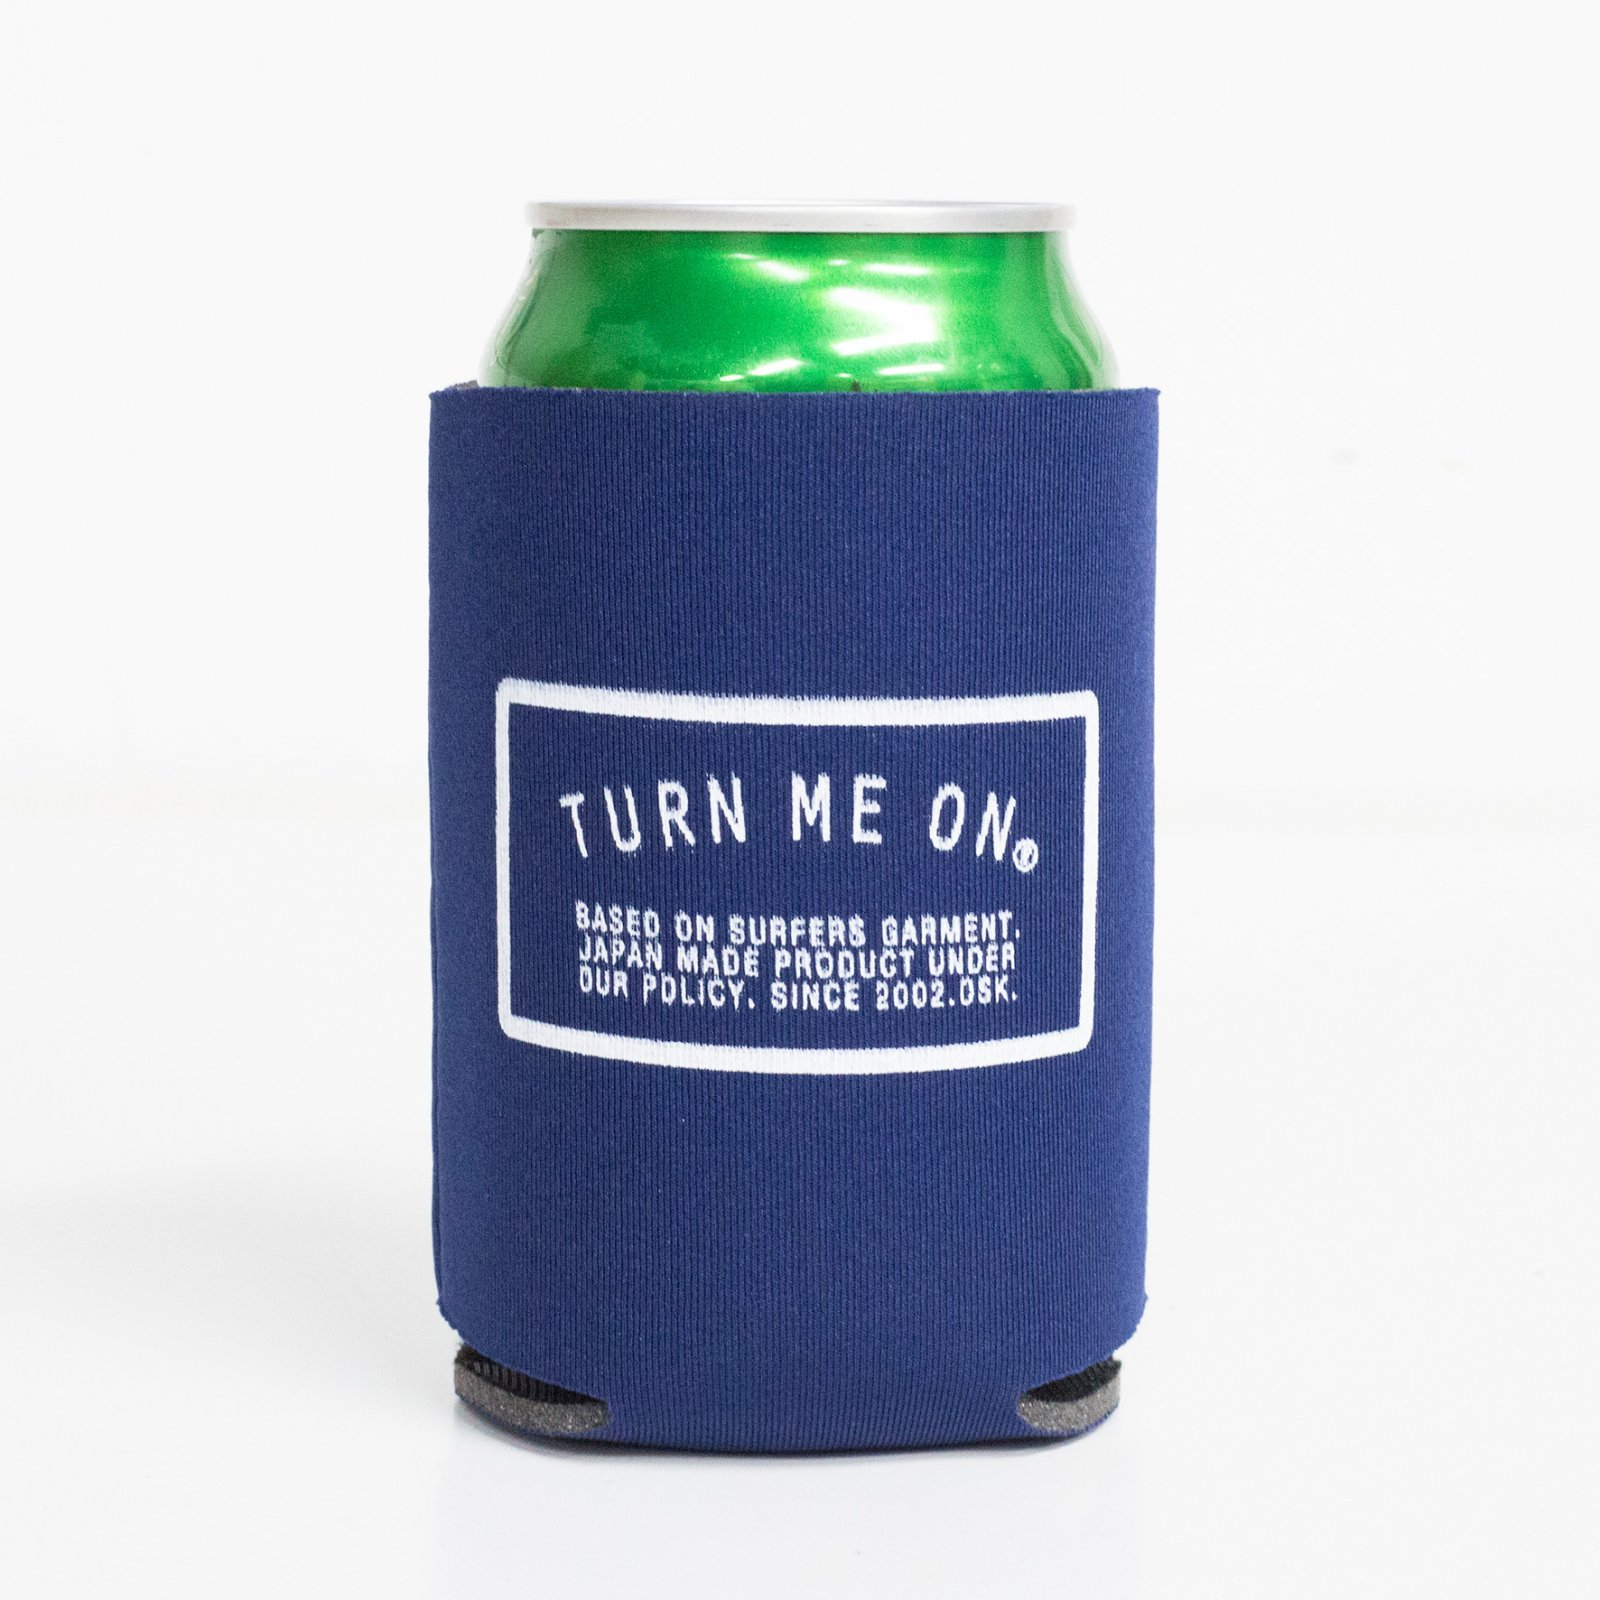 <img class='new_mark_img1' src='https://img.shop-pro.jp/img/new/icons14.gif' style='border:none;display:inline;margin:0px;padding:0px;width:auto;' />LOGO KOOZIE クージー (NAVY)